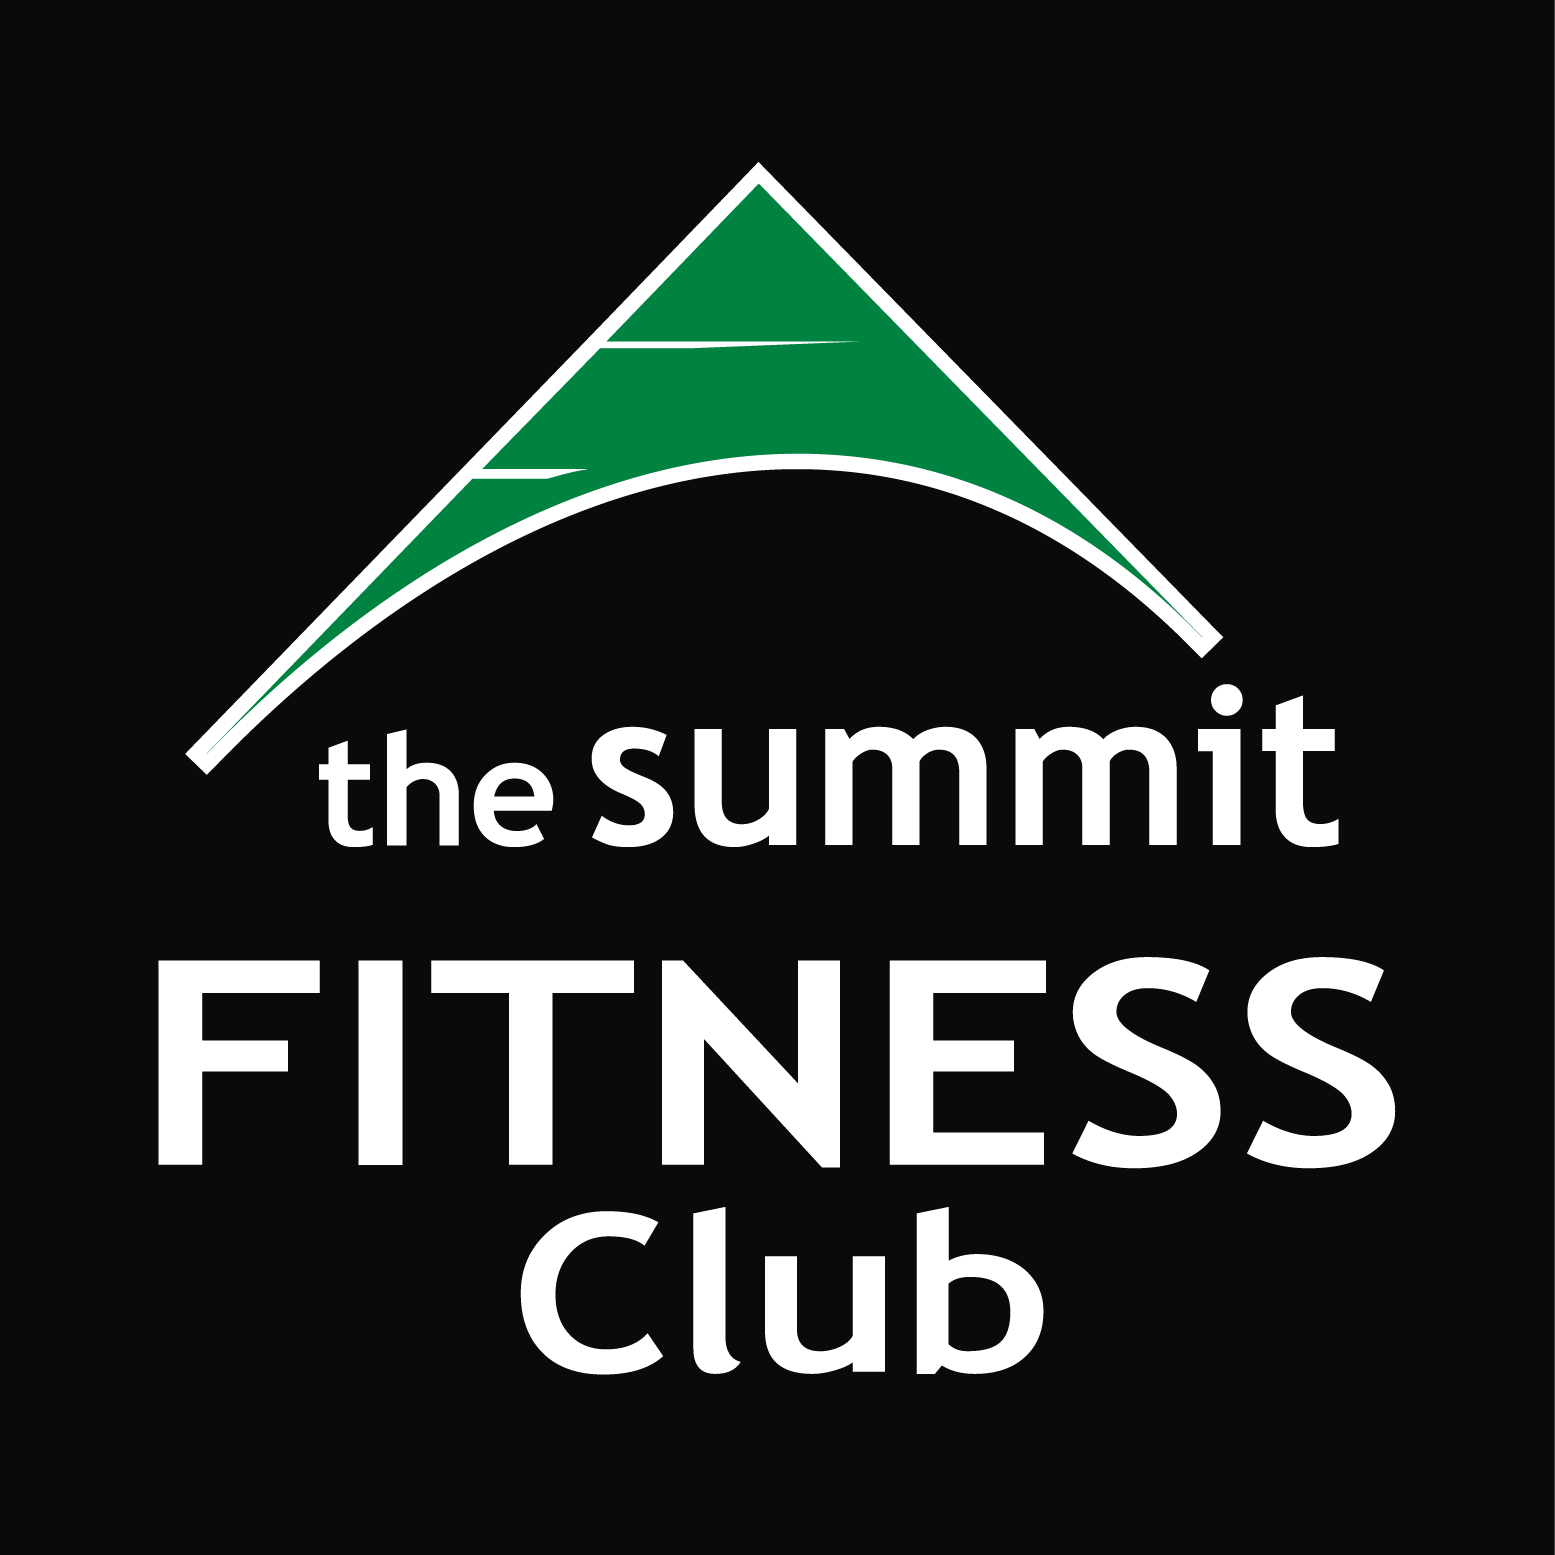 Summit fitness shortblacklogo